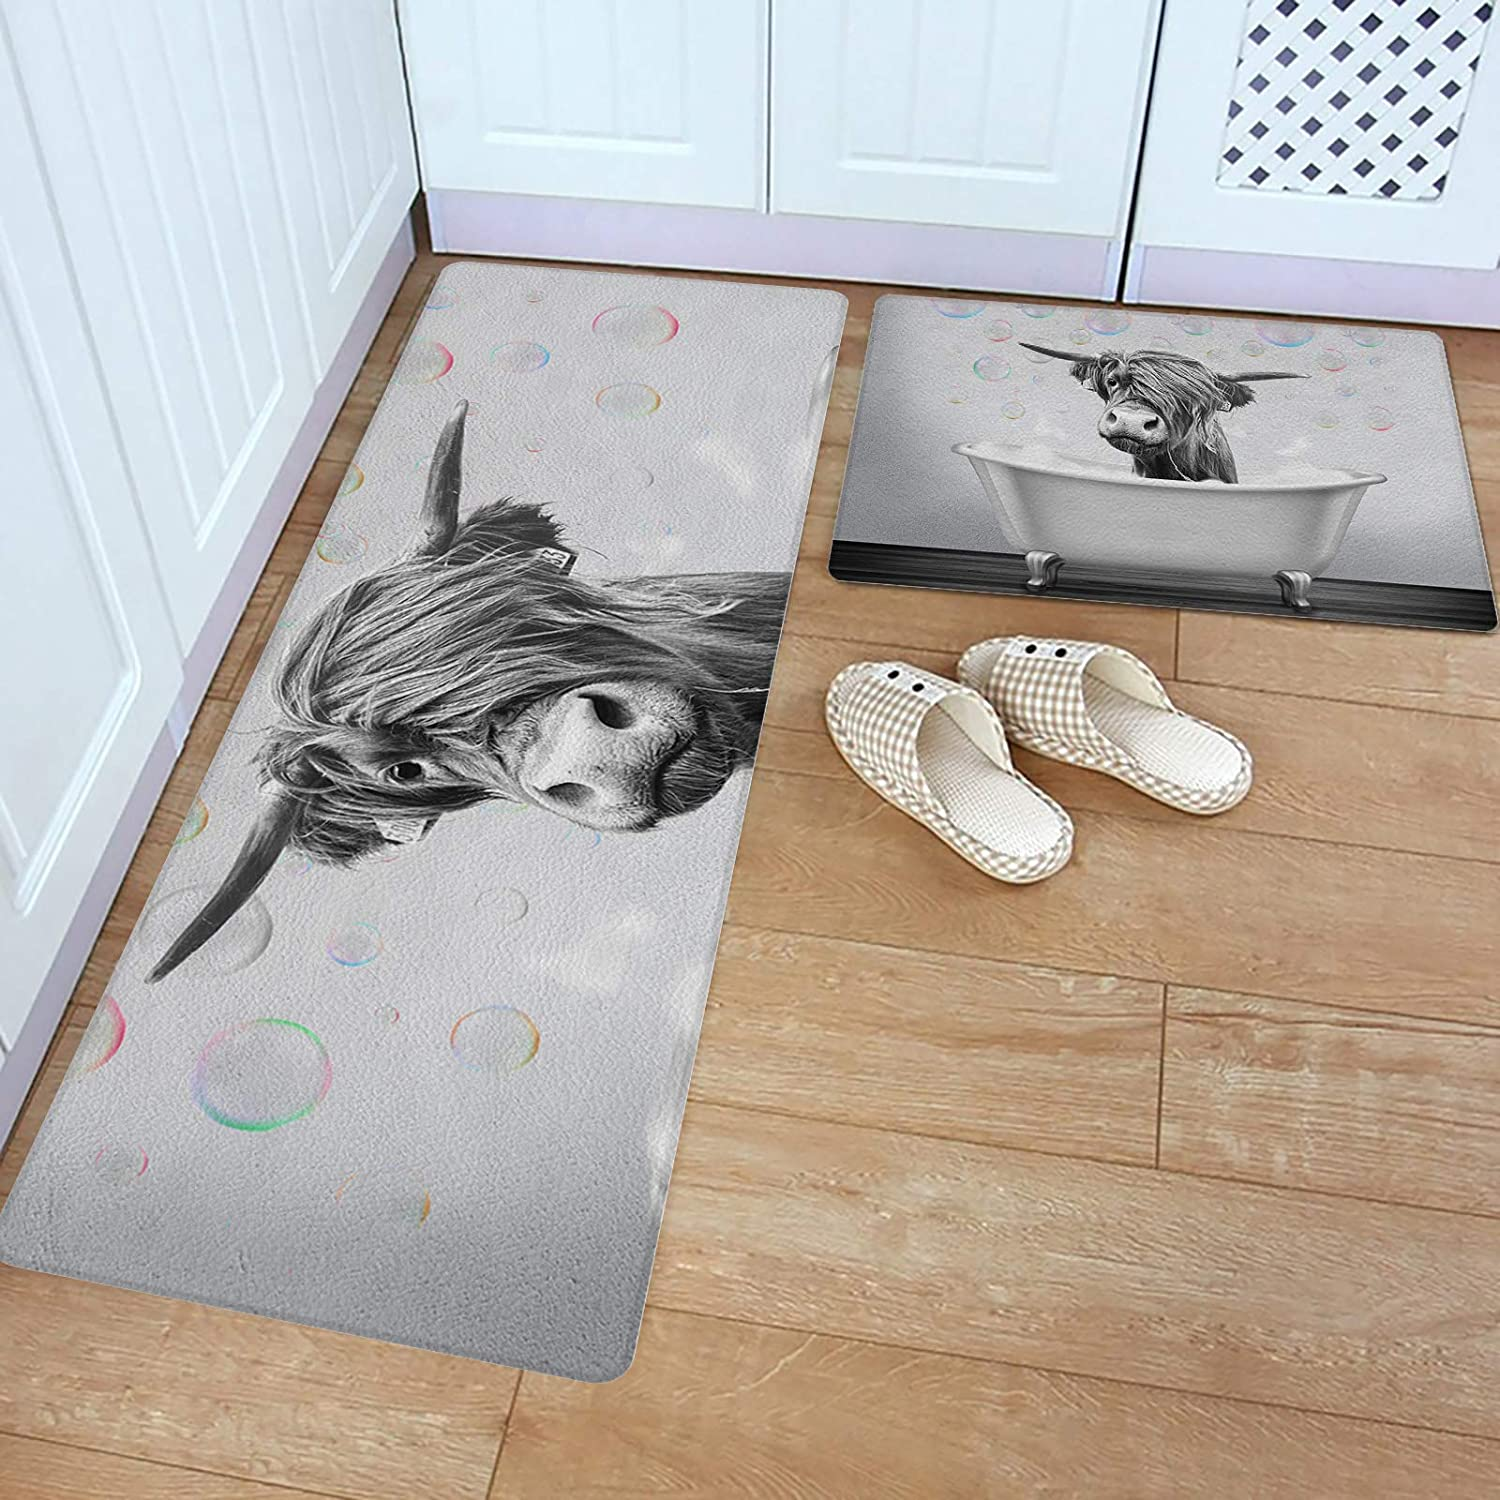 2 Piece Kitchen Rugs Set Popular Price reduction standard Leather Black and Standing Mats White